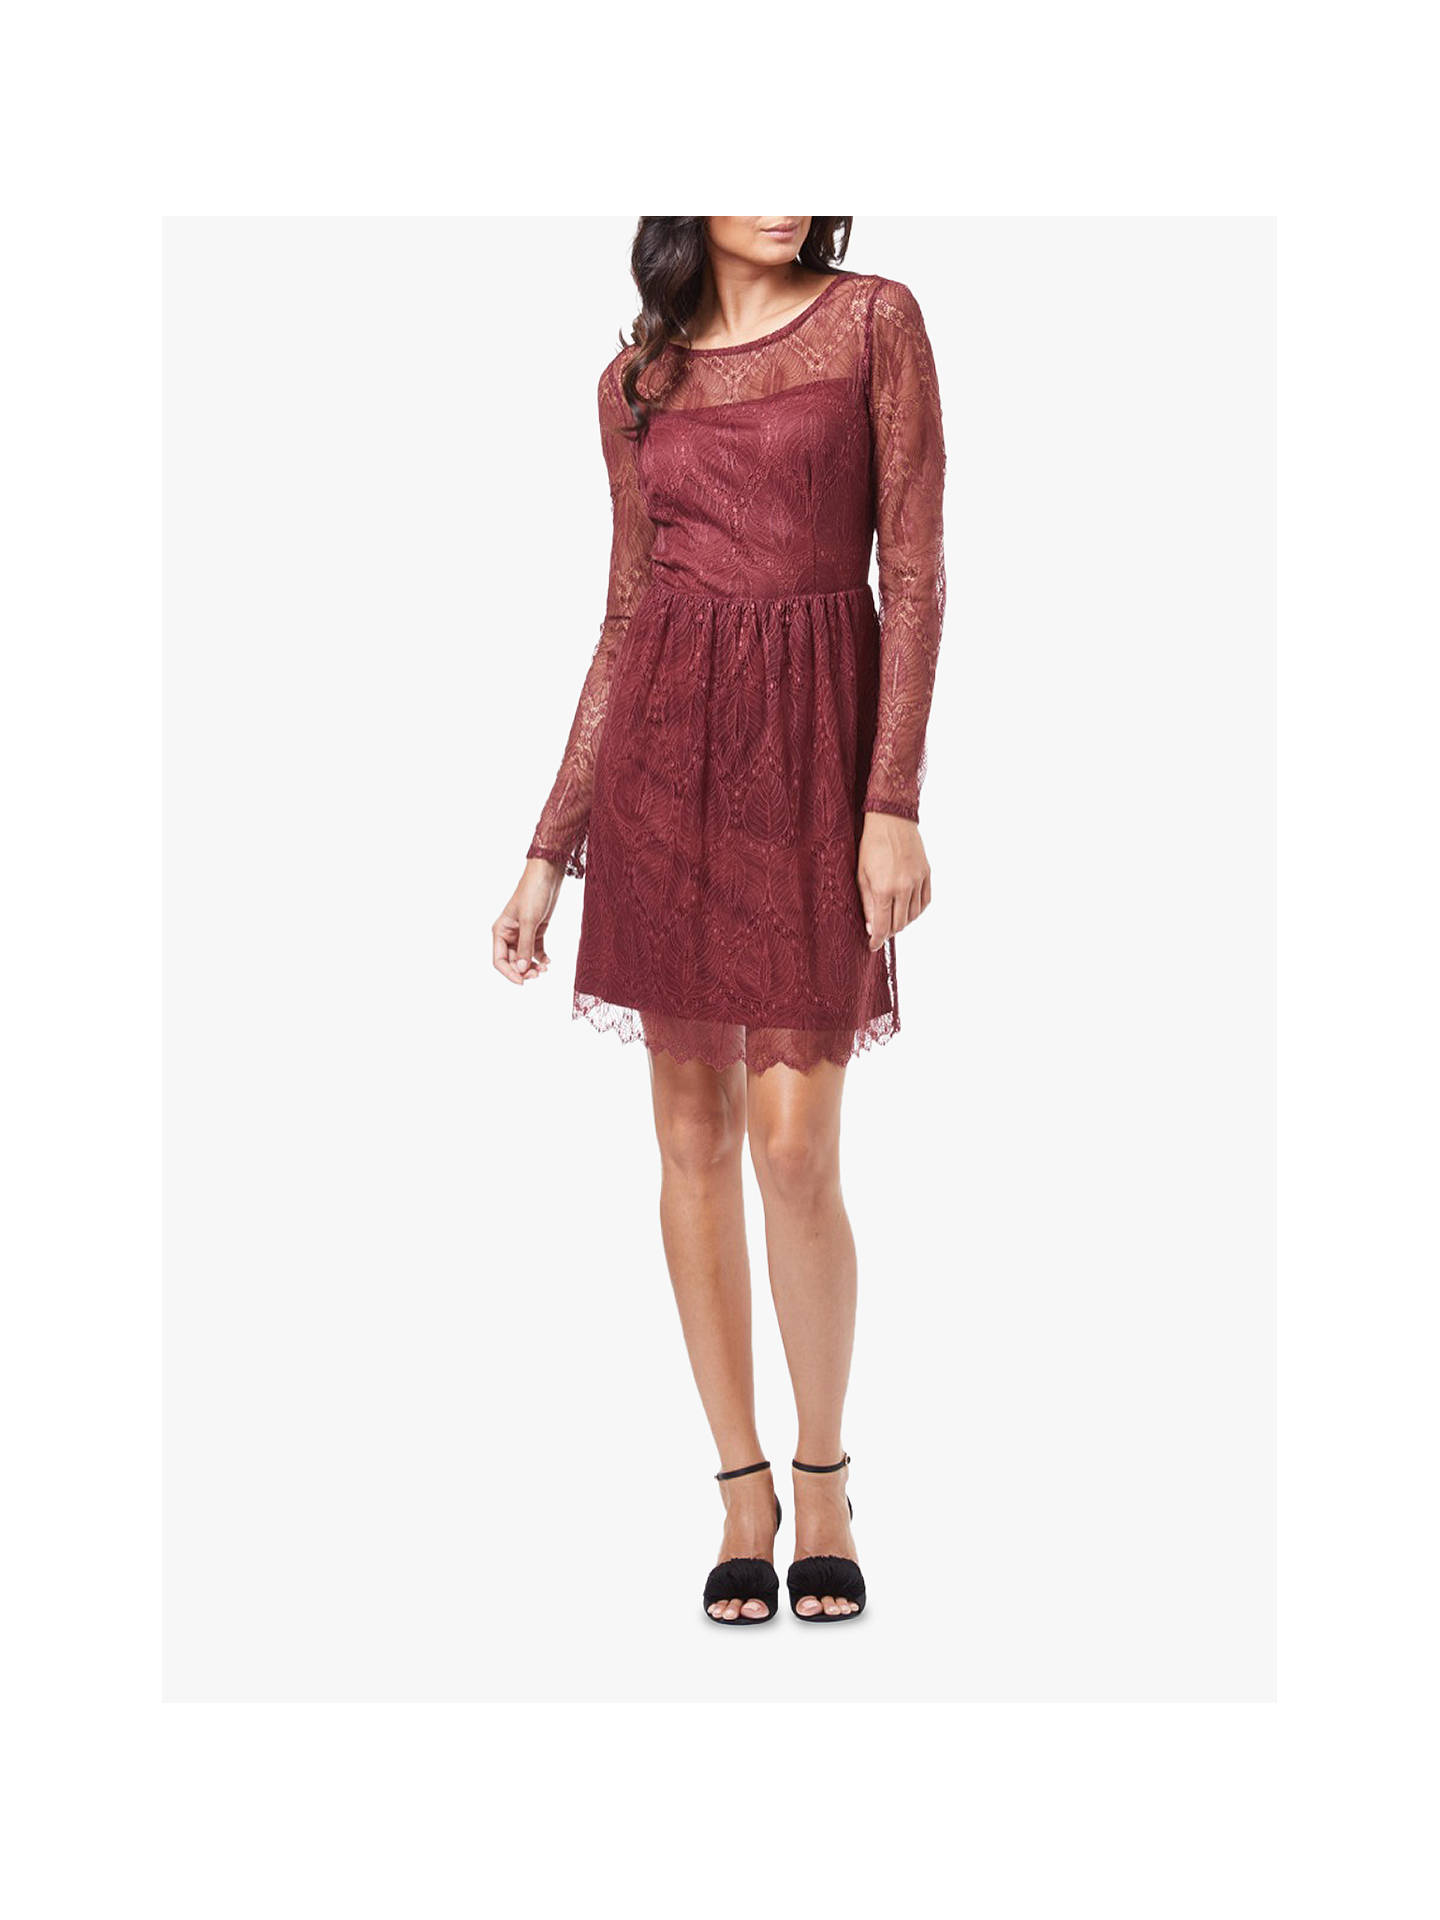 BuyAdrianna Papell Delicate Flare Dress, Pale Mahogany, 8 Online at johnlewis.com